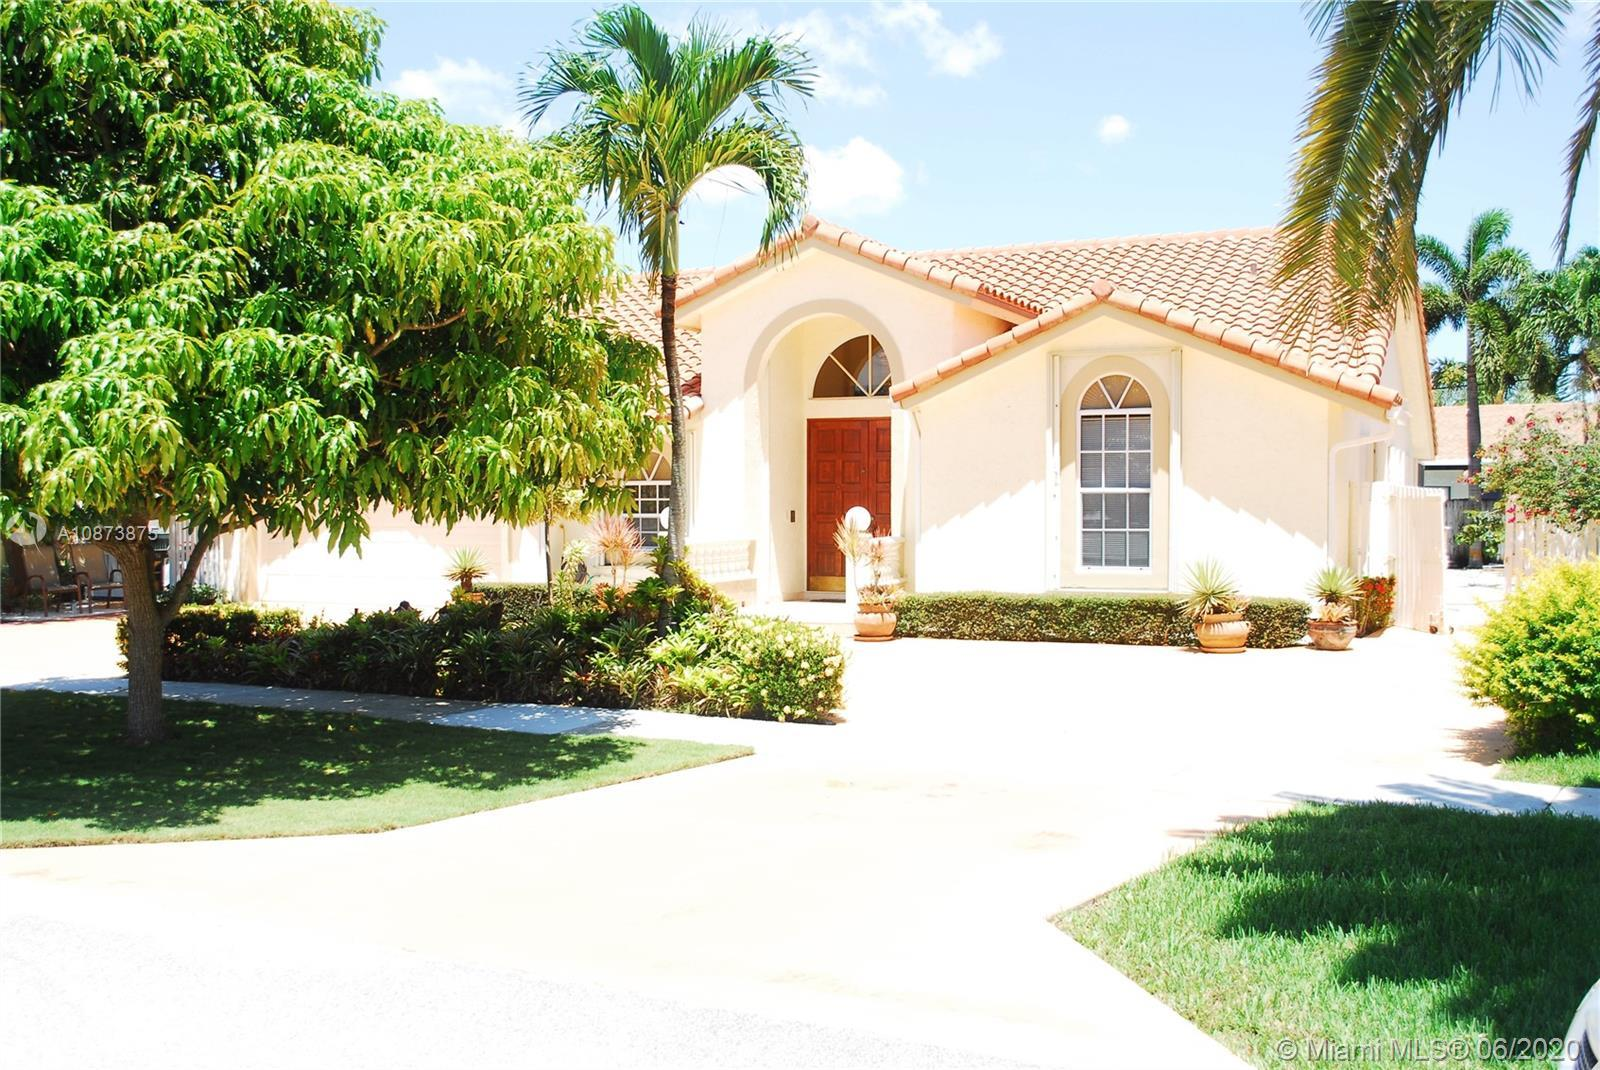 This is a 4/2.5 spacious and well-maintained home with a pool in East Boca's desirable Hidden Valley